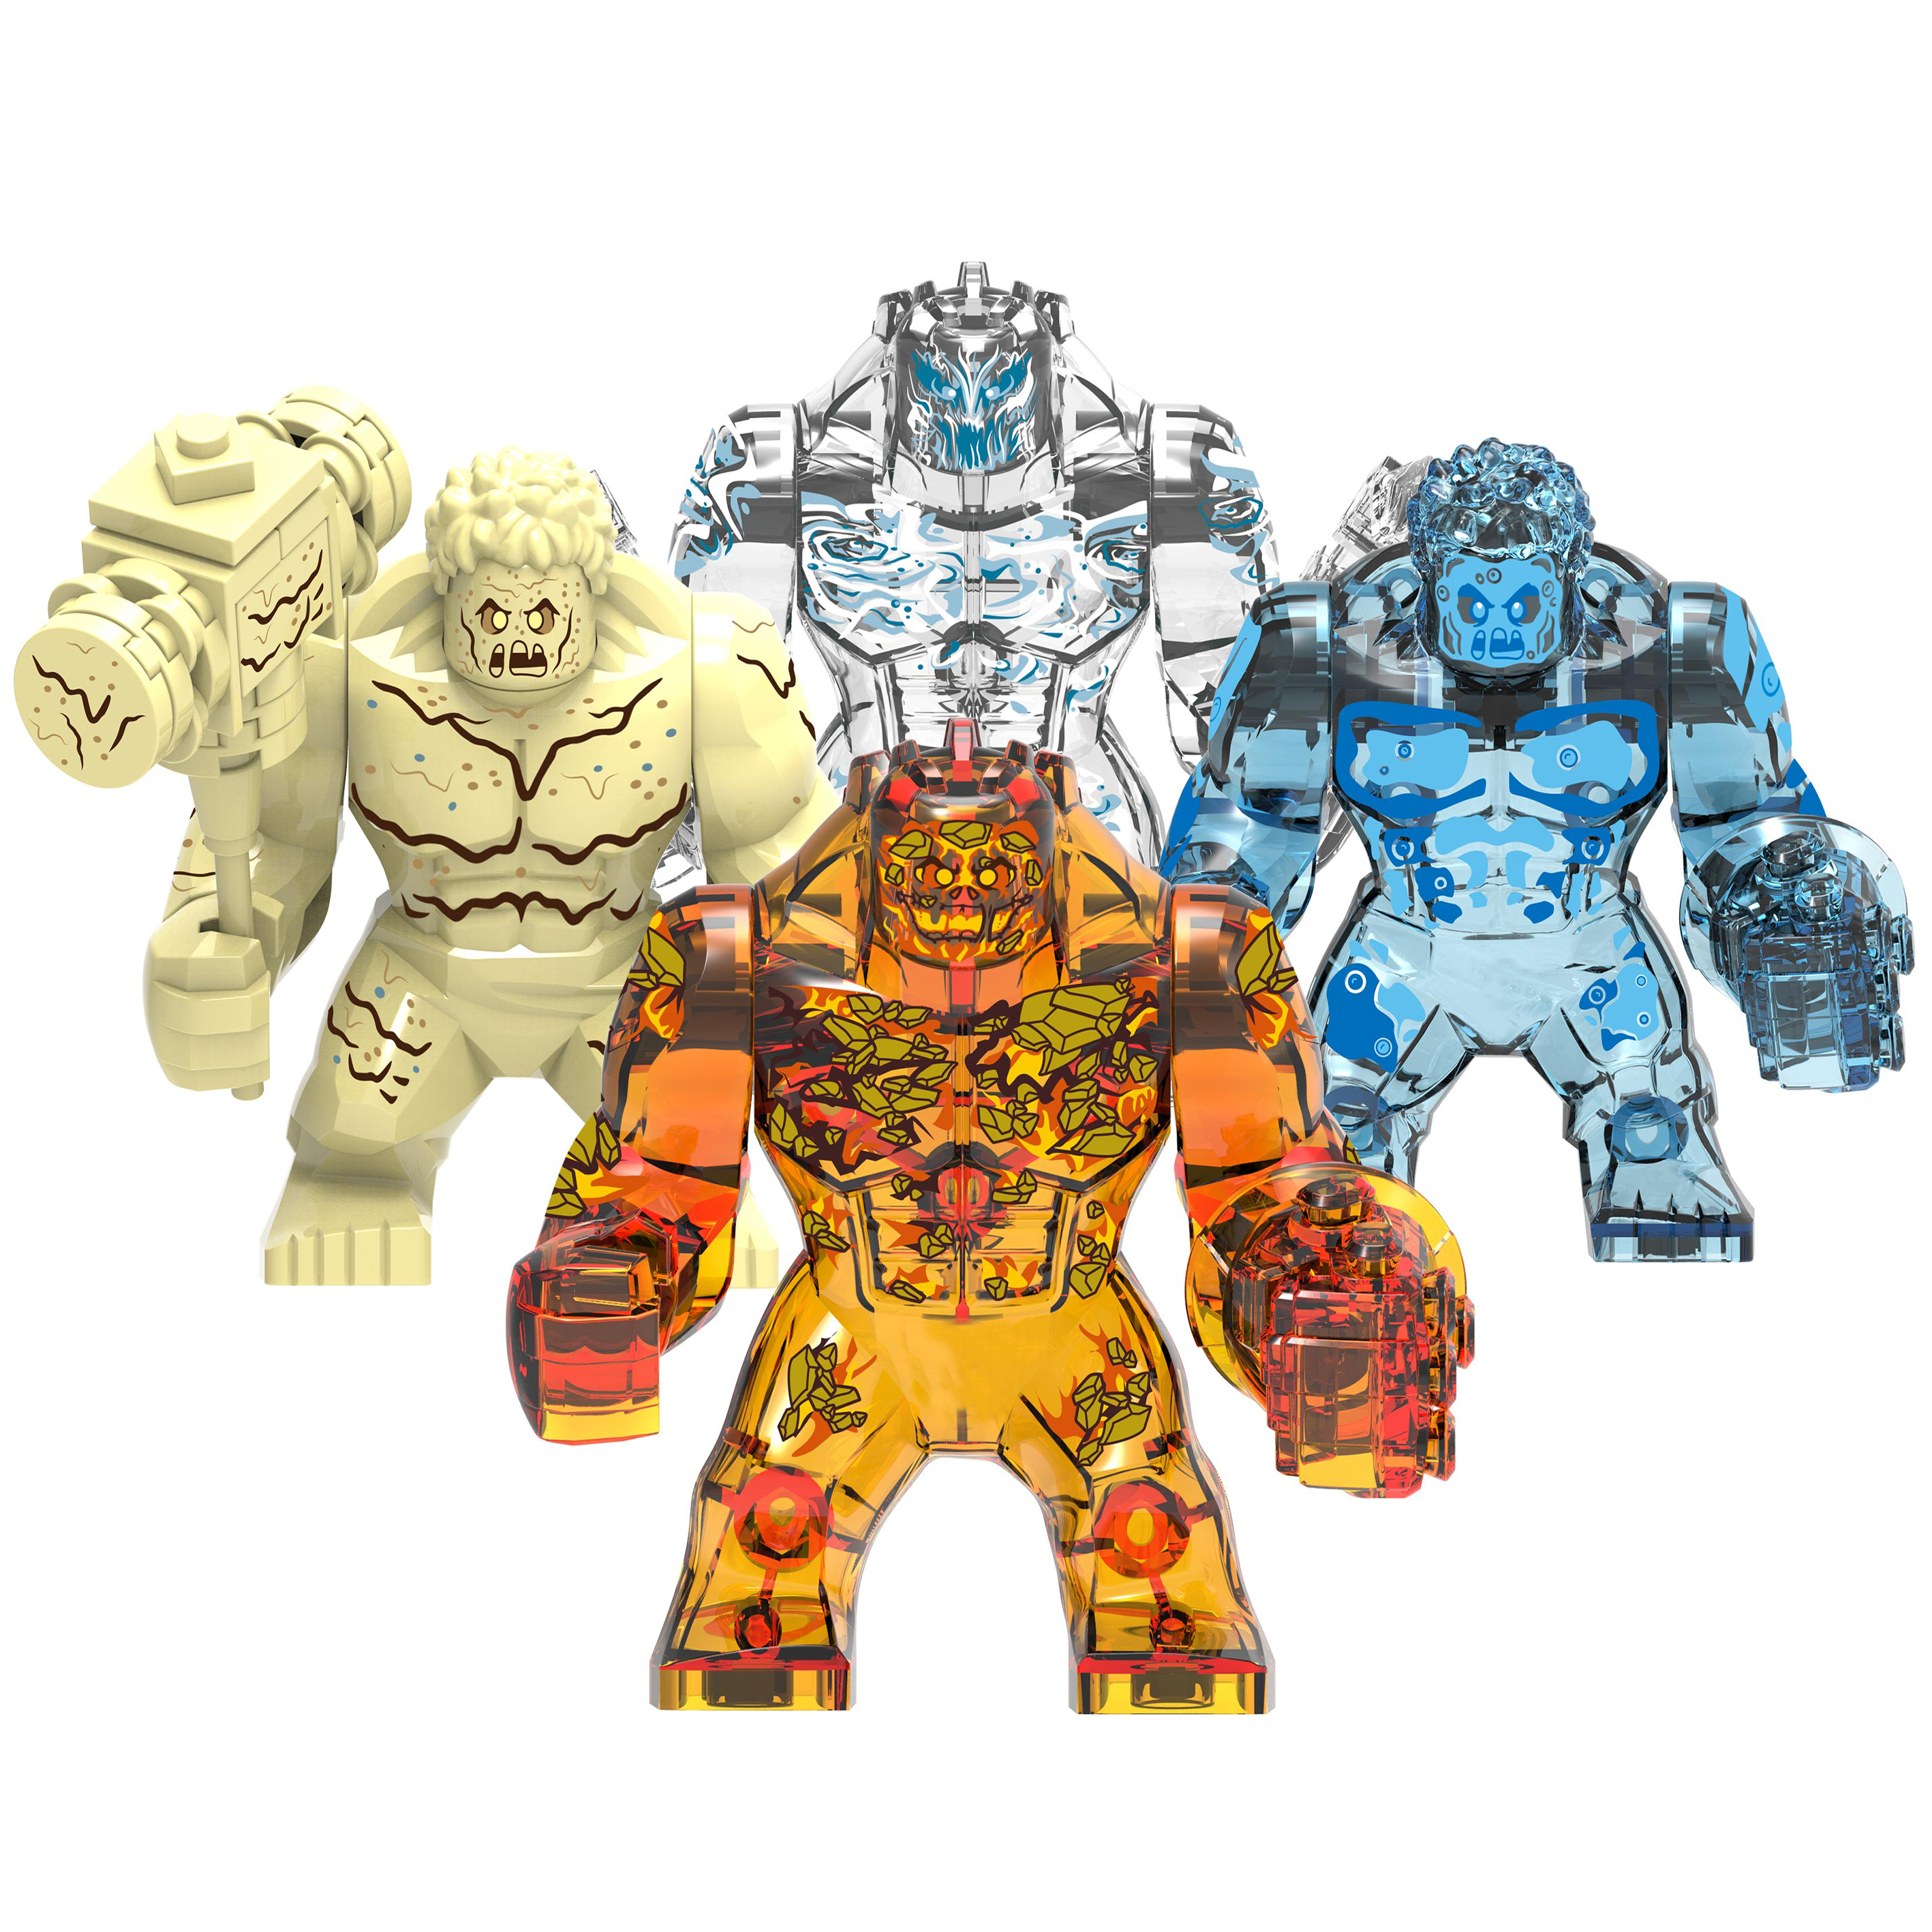 Image 5 - Big Size Hulk Marvel Avengers Endgame legoed Superheroes Hulkbuster Ironman Spiderman Thanos Building Blocks bricks Toy For Kids-in Blocks from Toys & Hobbies